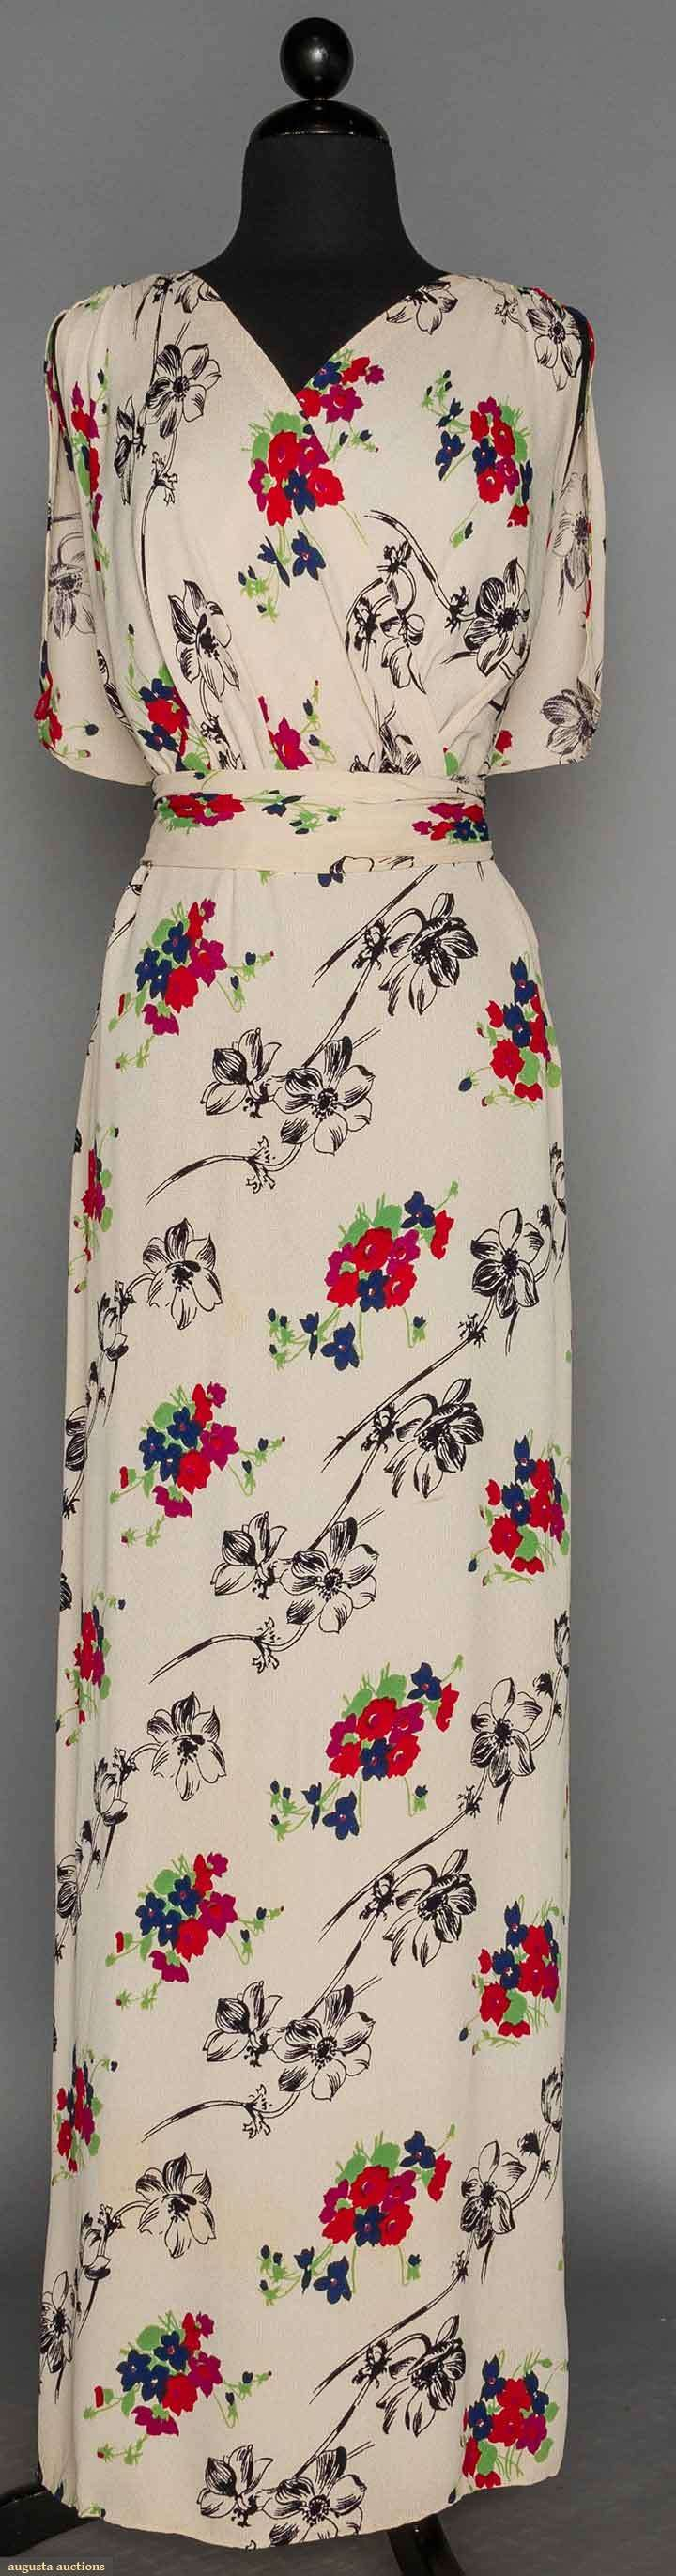 Long Printed Rayon Crepe Summer Dress, 1940s, via Augusta Auctions.